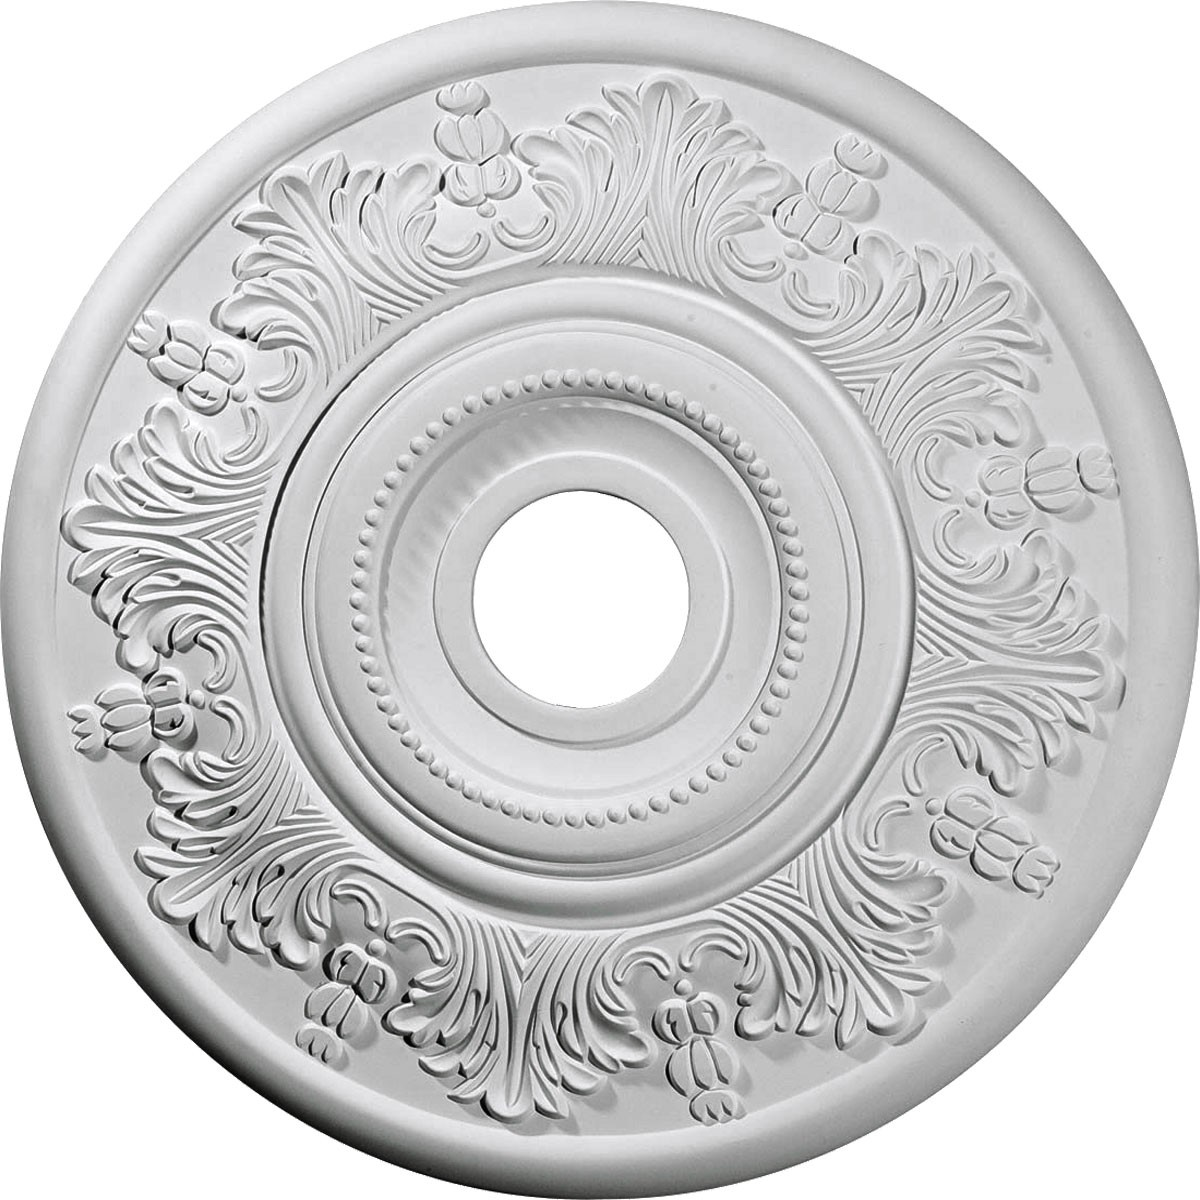 "EM-CM20VI - 20""OD x 3 1/2""ID x 1 1/2""P Vienna Ceiling Medallion (Fits Canopies up to 6 1/2"")"